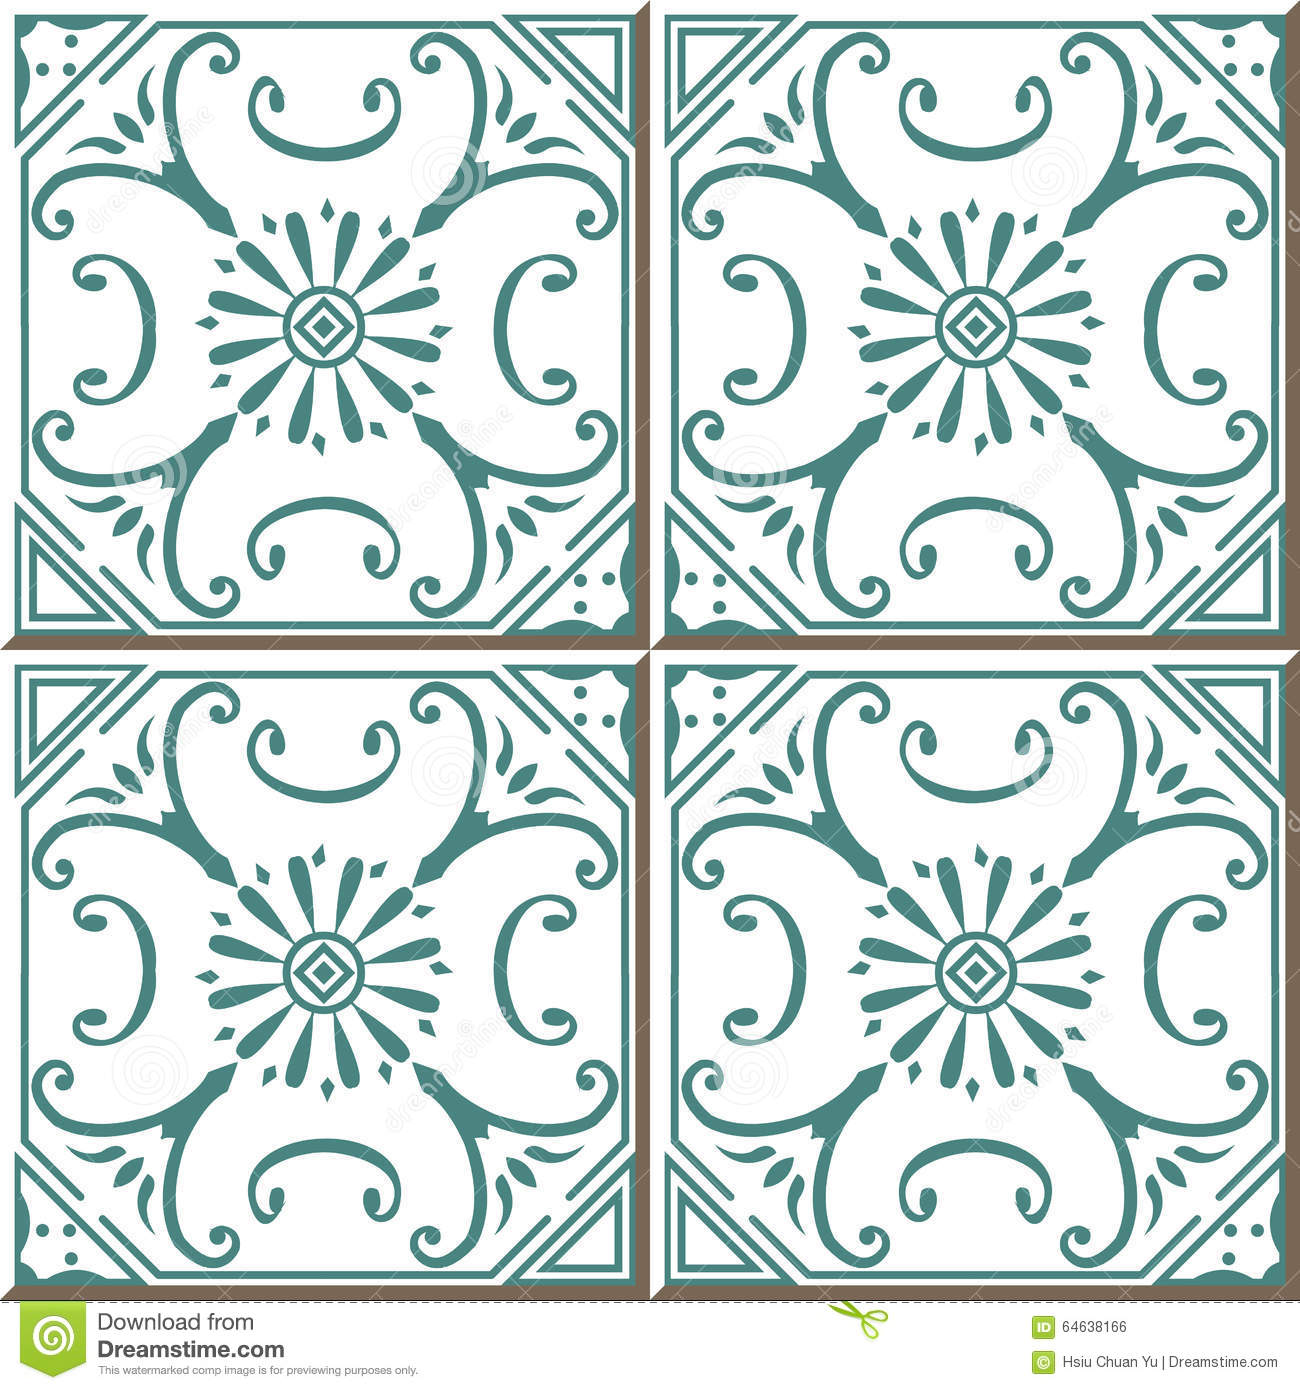 Vintage Seamless Wall Tiles Of Green Spiral Vine, Moroccan ...